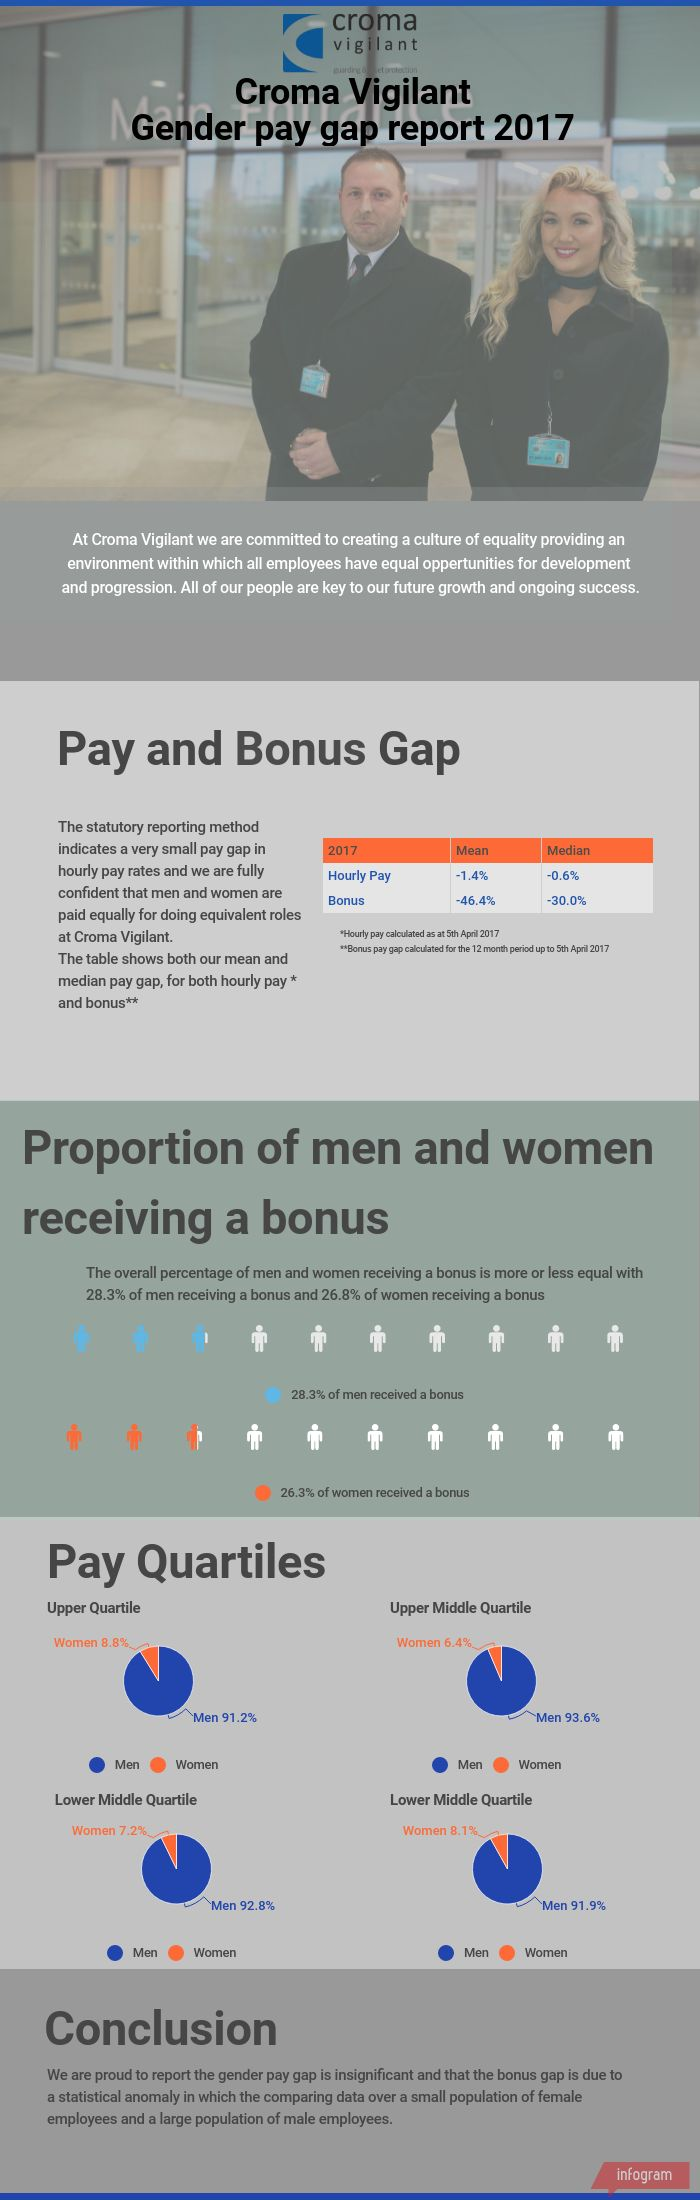 Croma Vigilant Gender Pay Gap Report 2017 FINAL.jpg